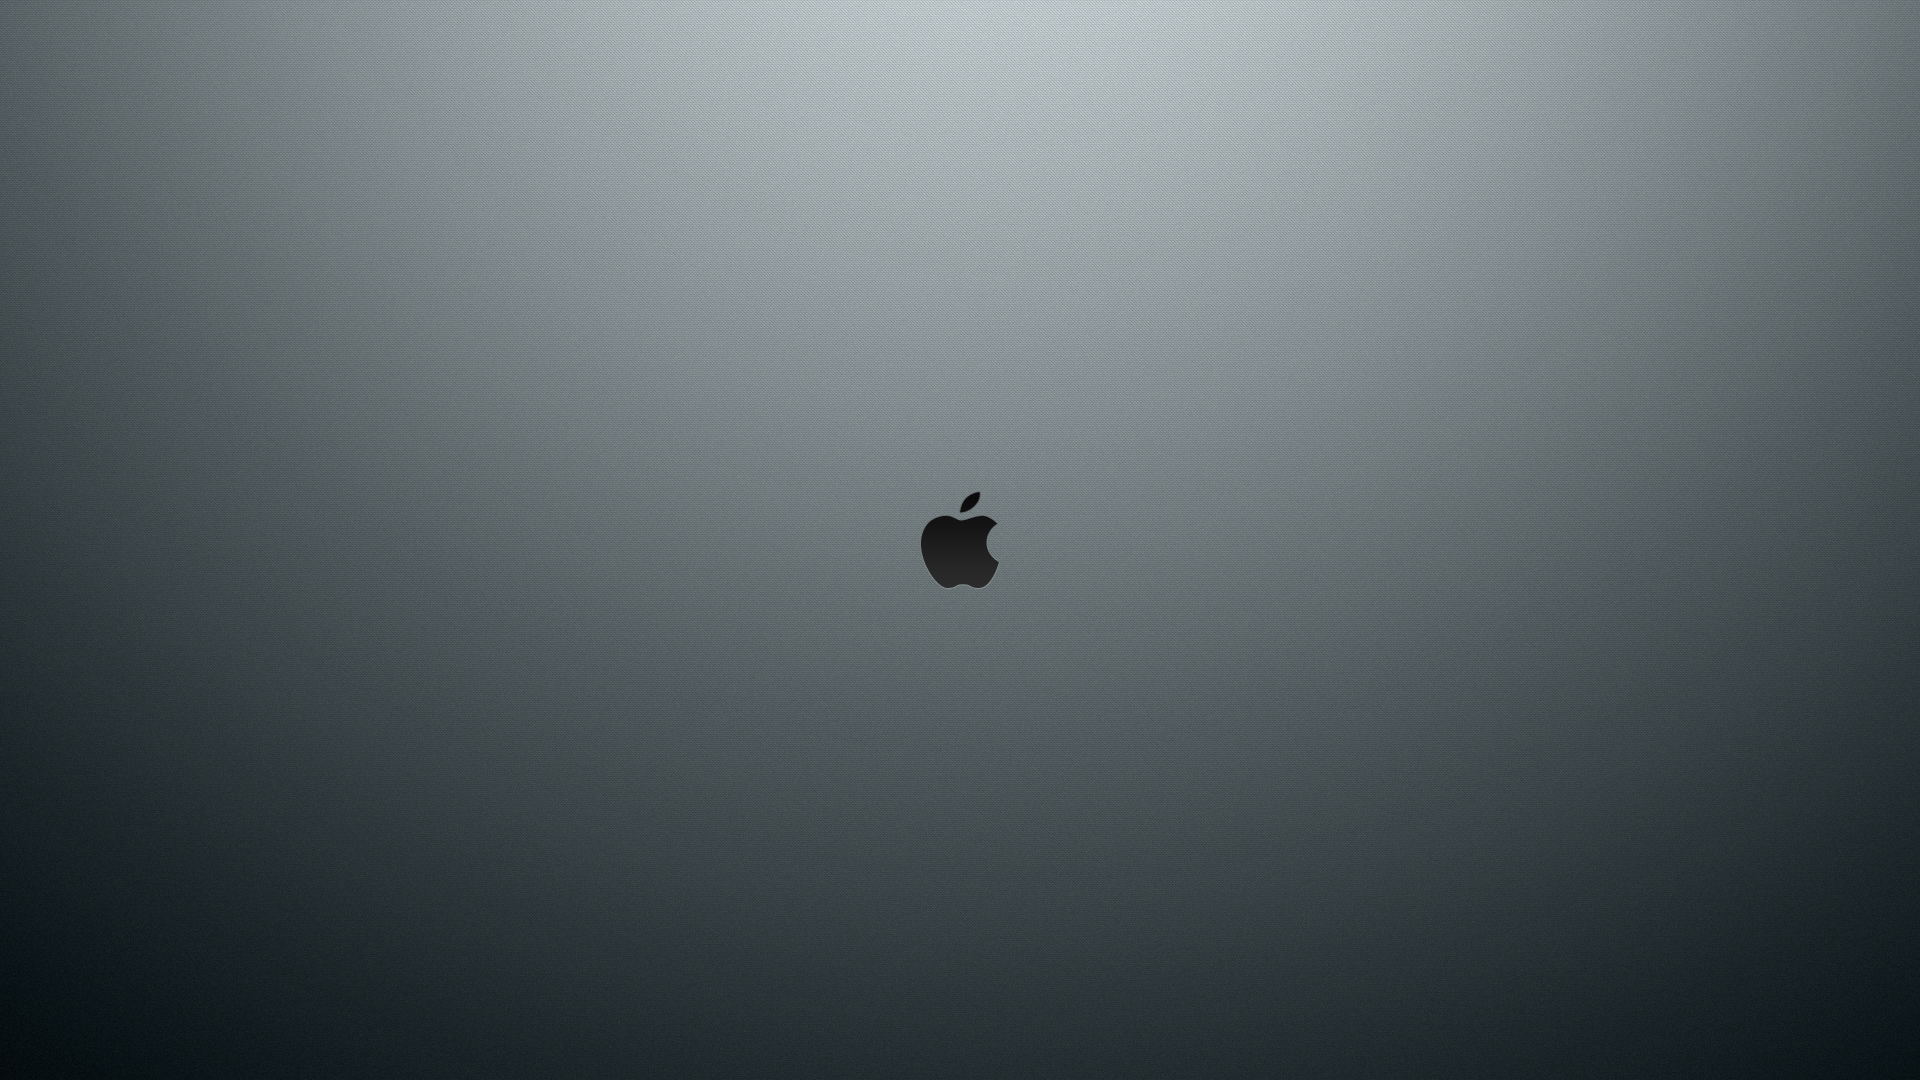 cool apple logos hd. just the apple logo cool logos hd l